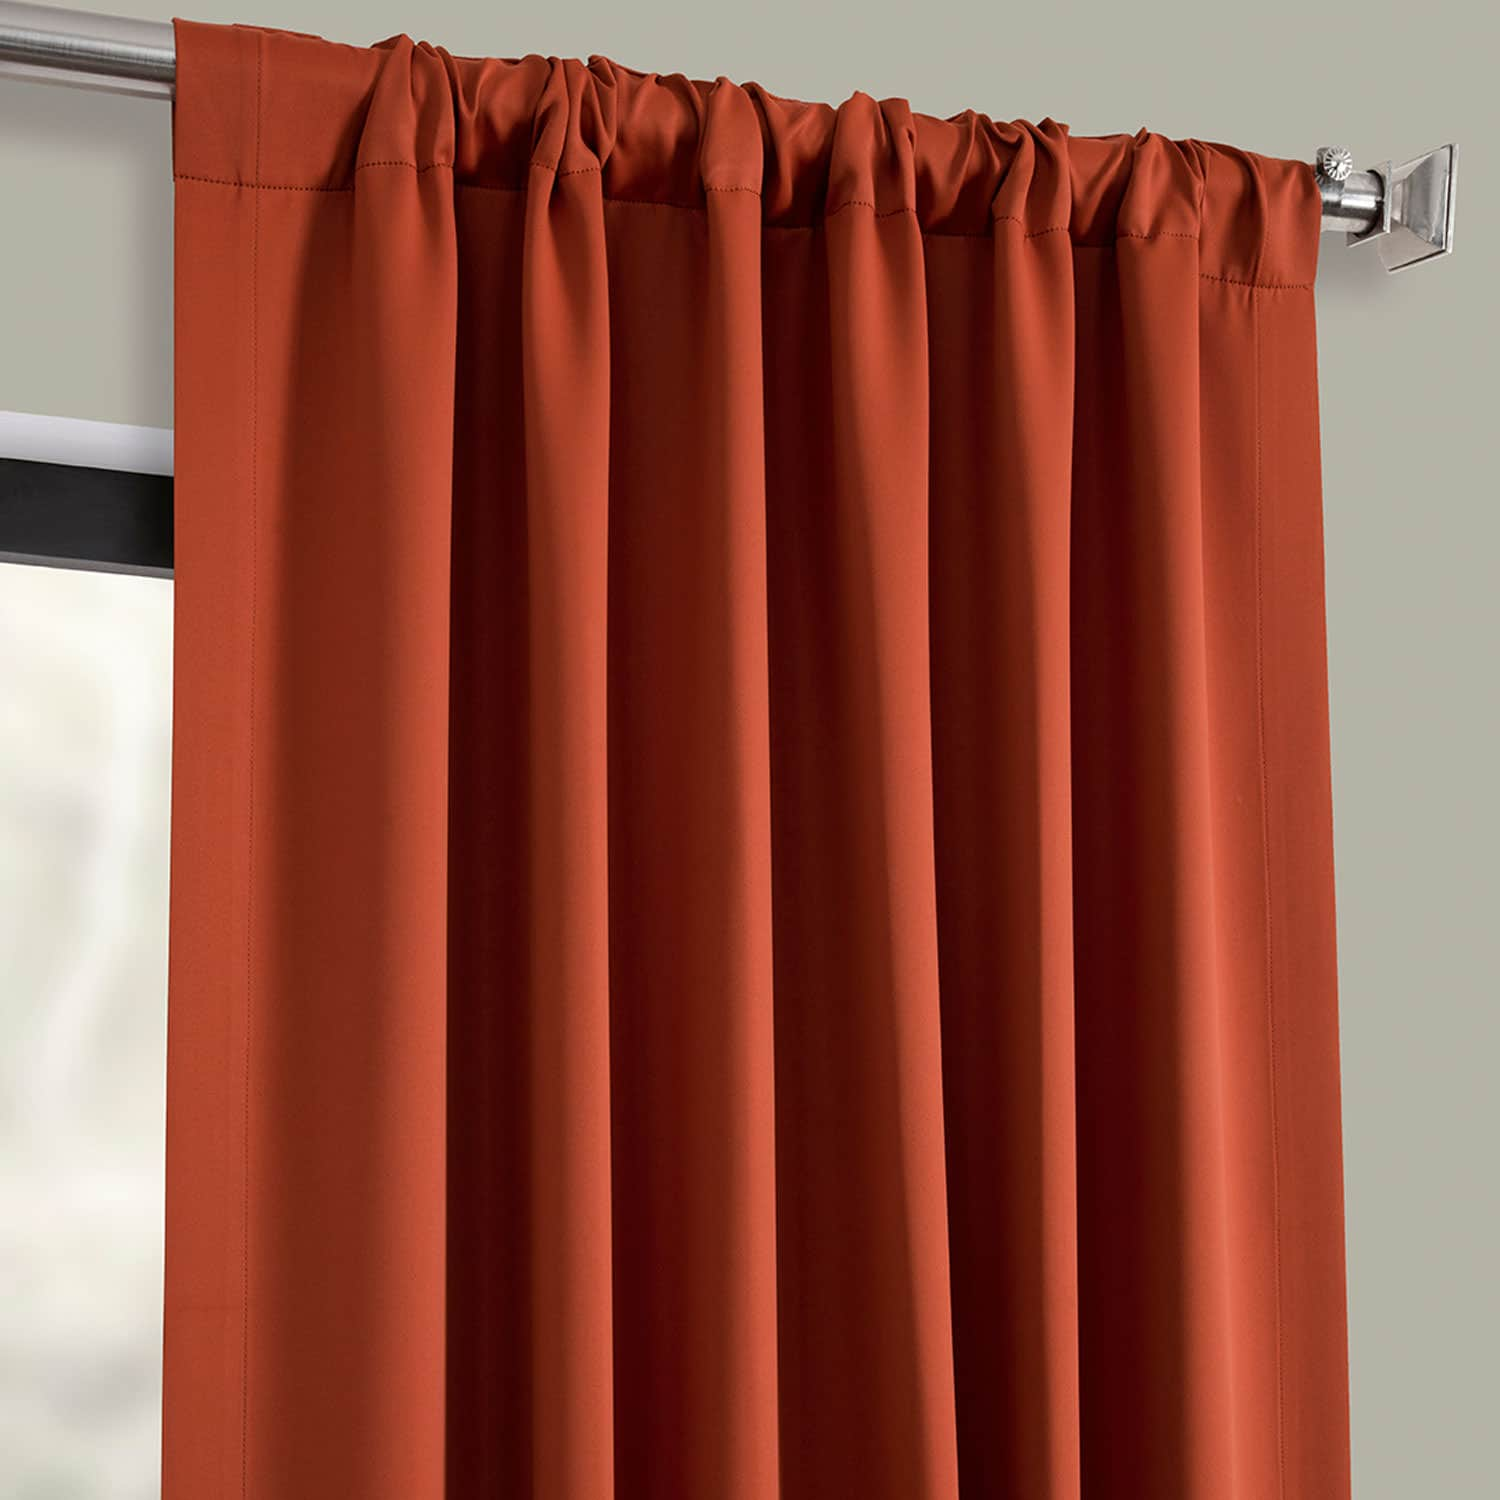 Blaze Blackout Room Darkening Curtain